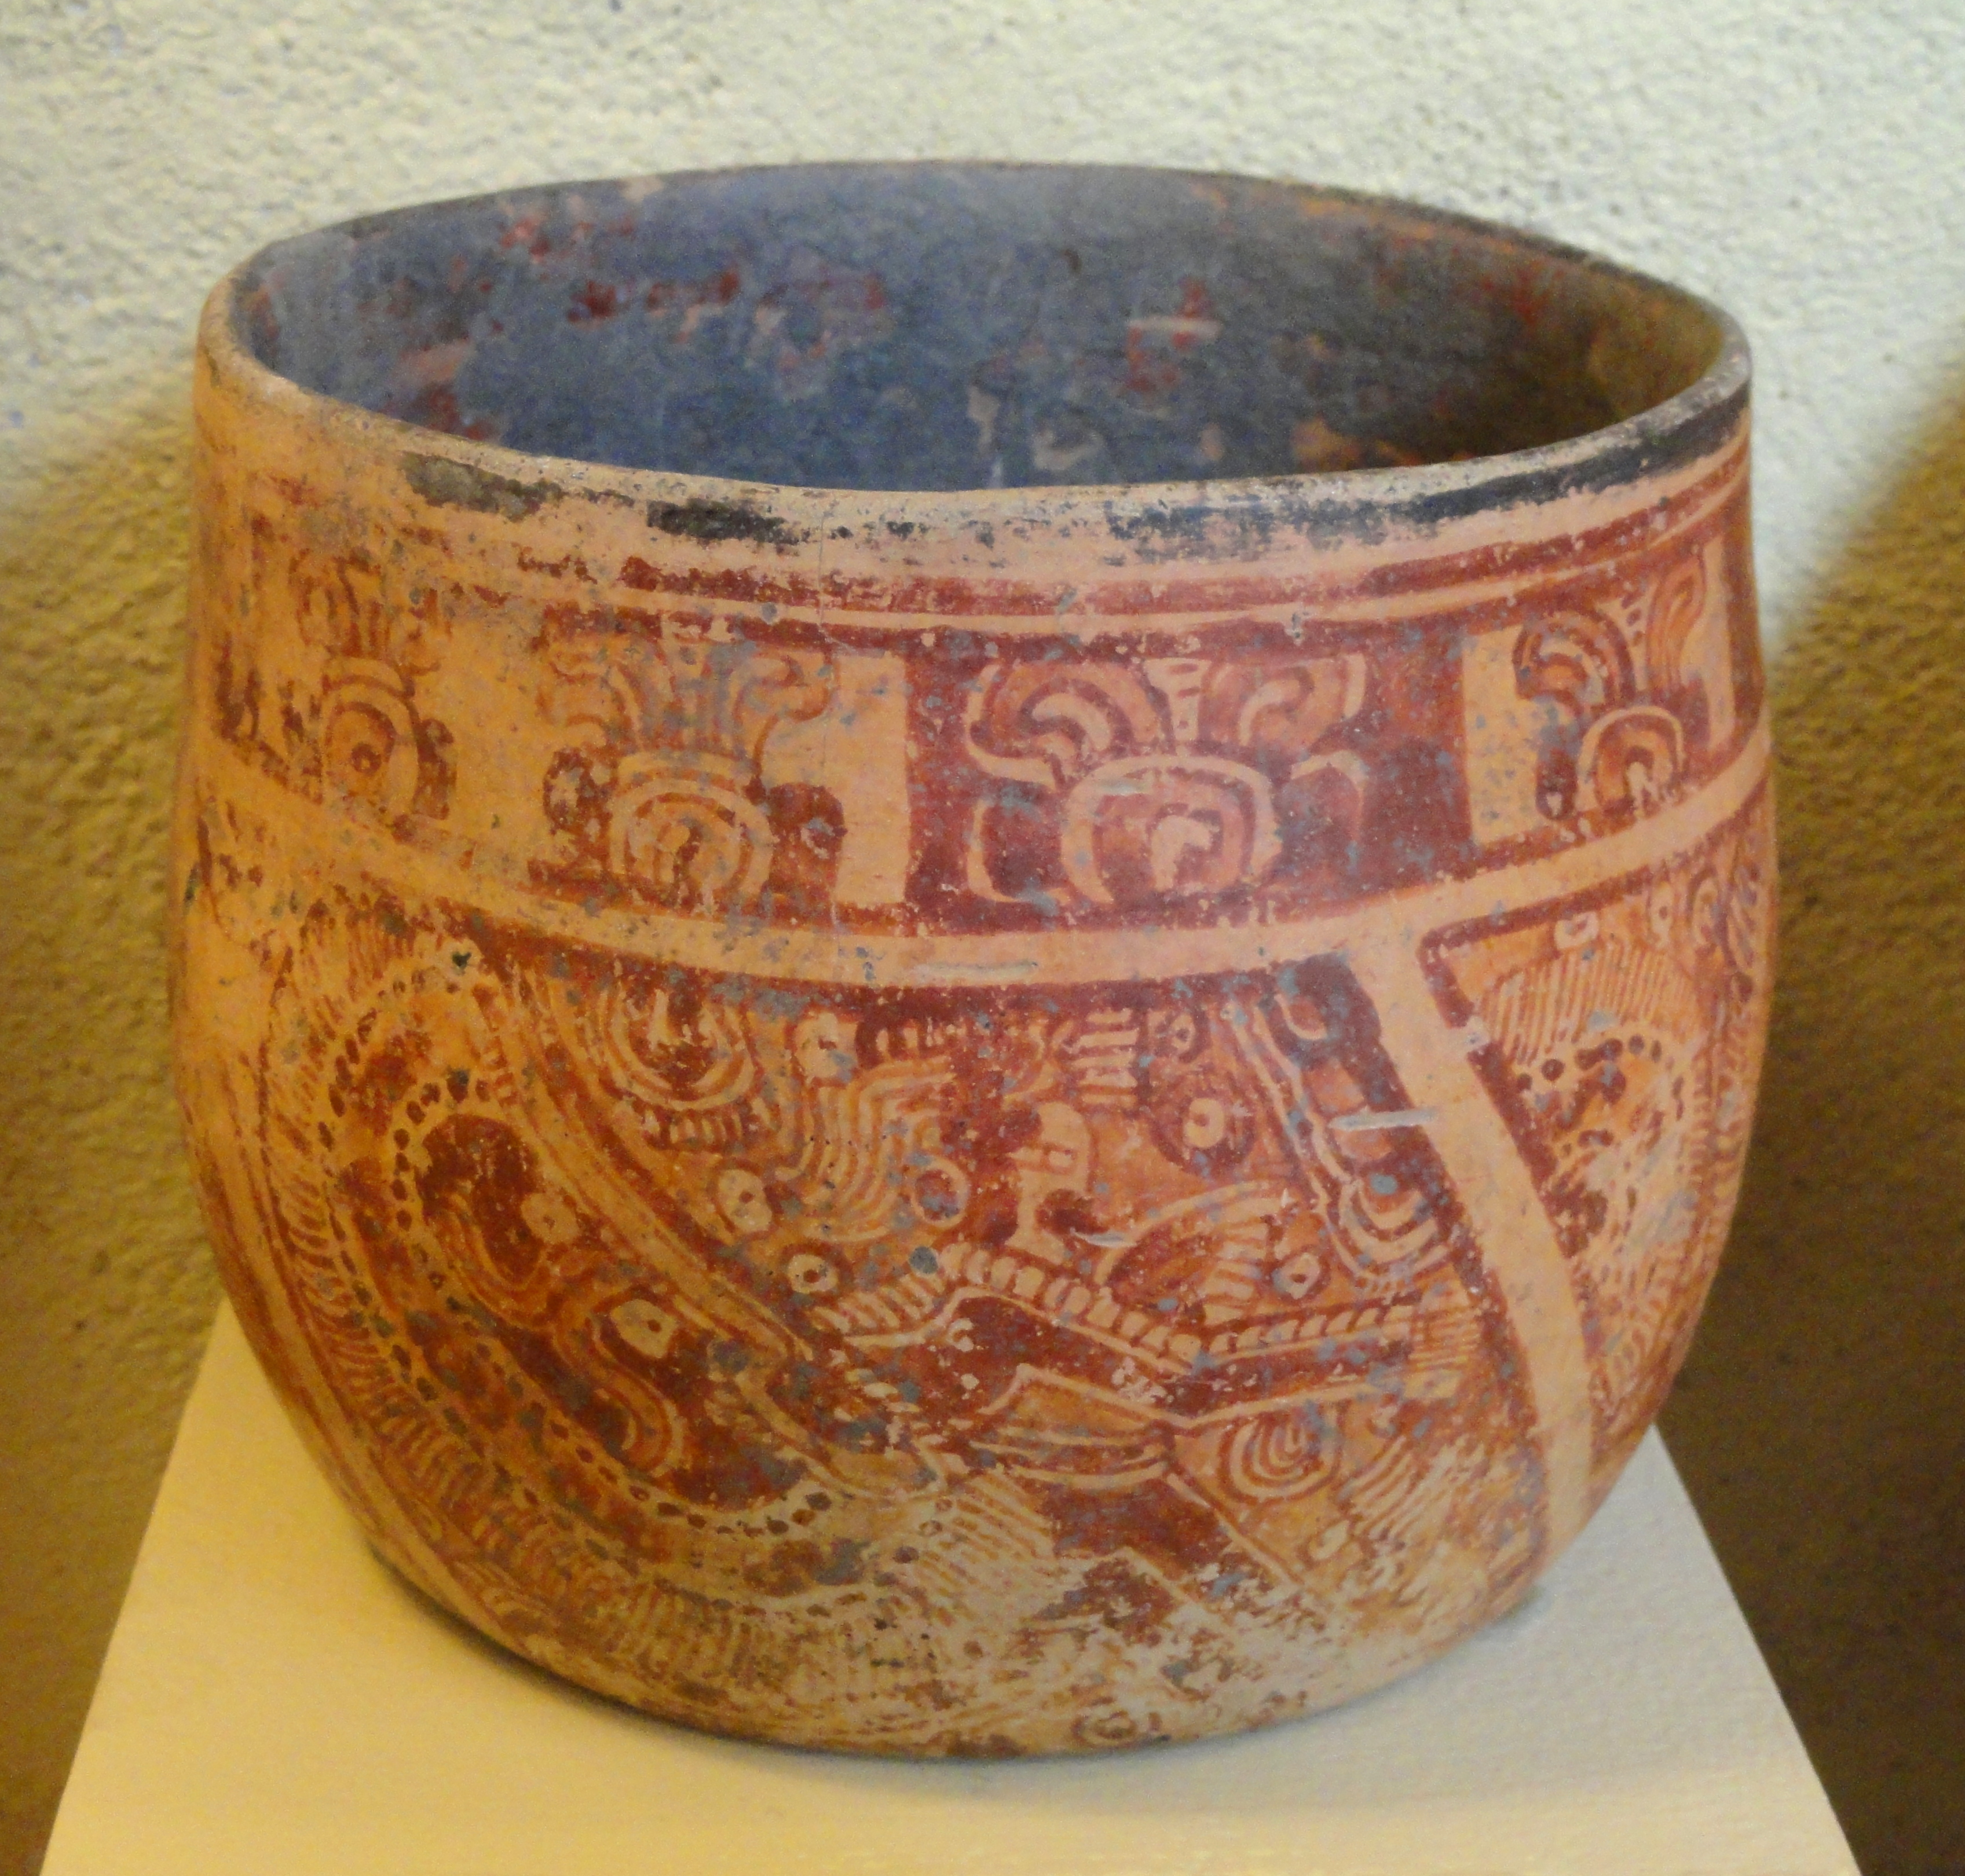 Vase With Elaborately Costumed Noble C Late Classic Mayan C Copan C Honduras San Diego Museum Of Man Dsc